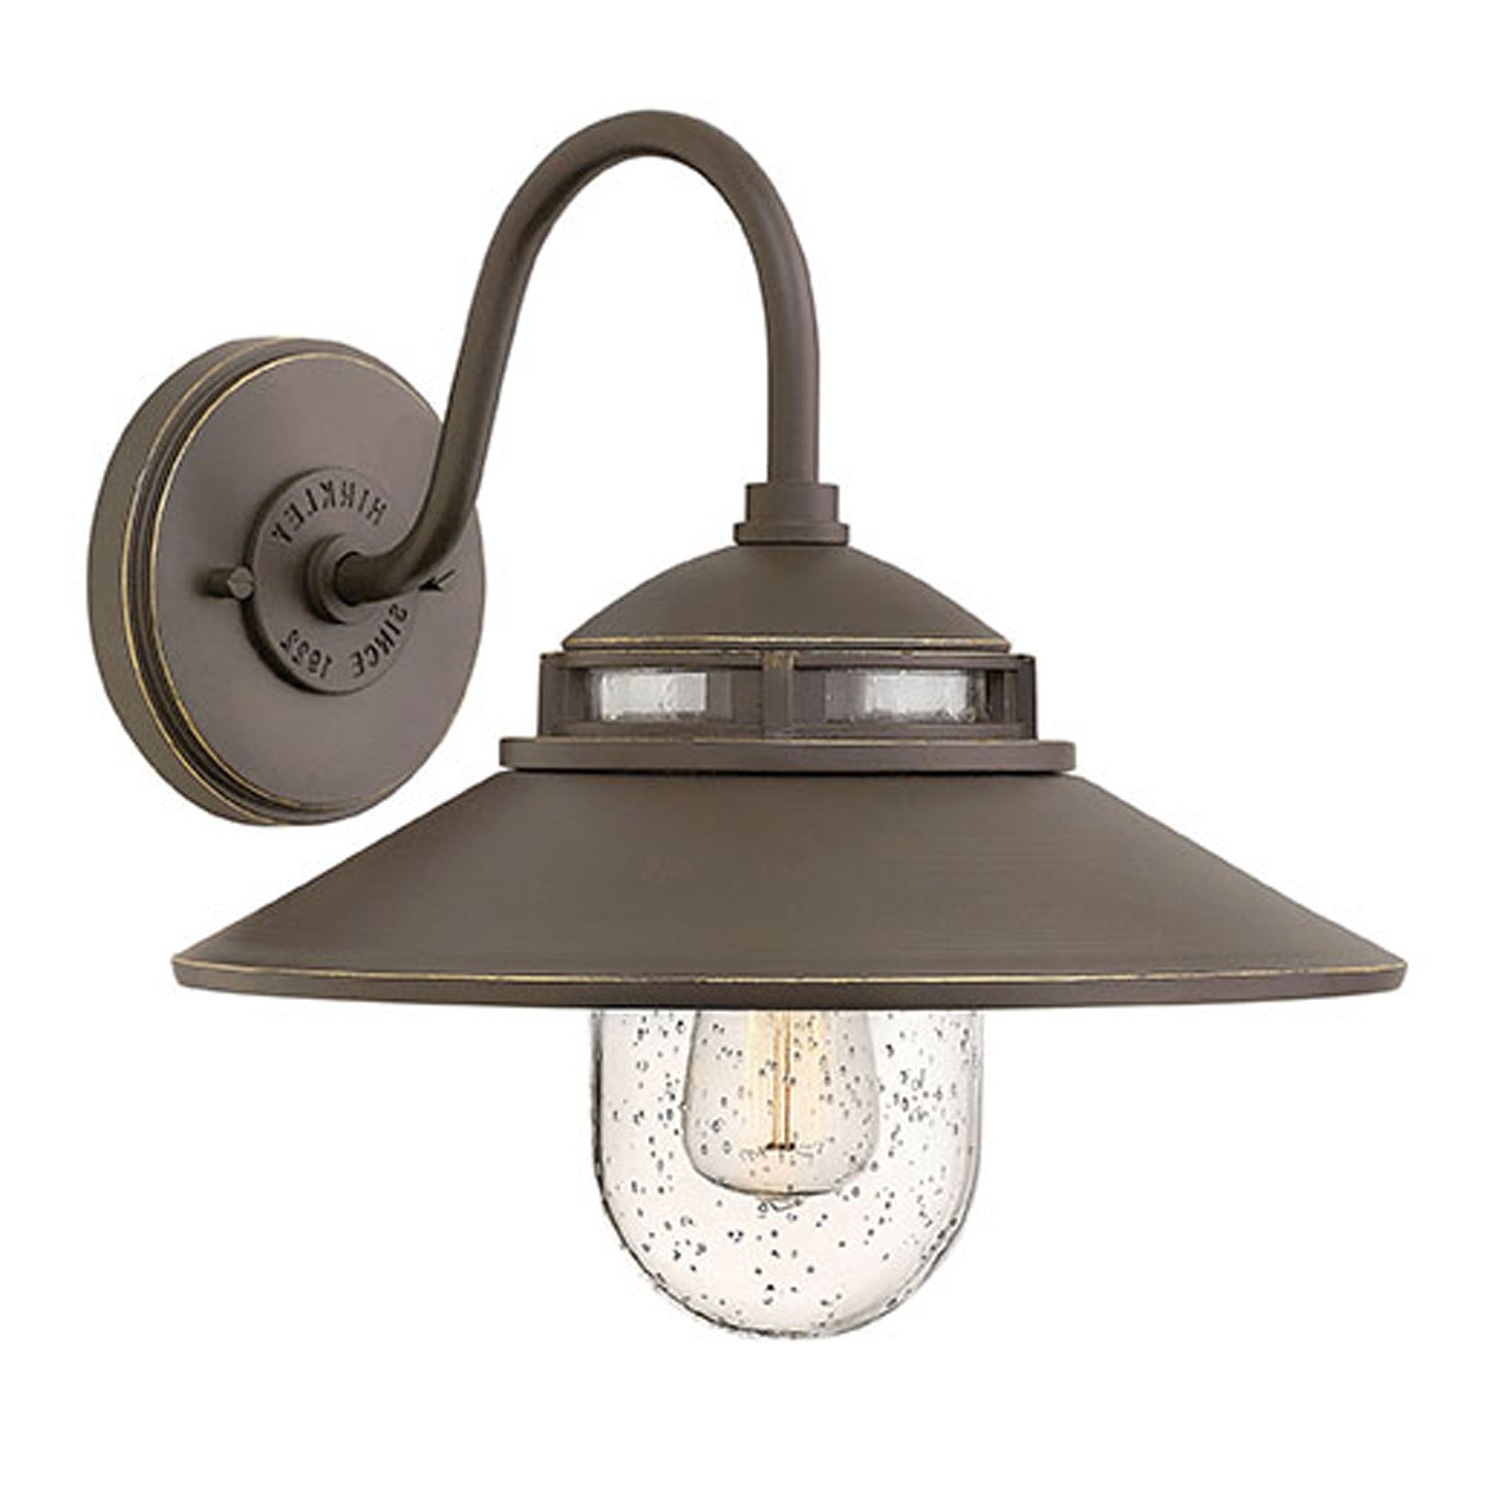 Atwell Oil Rubbed Bronze One Light Outdoor 12 Inch Small Wall Mount Regarding Preferred Double Wall Mount Hinkley Lighting (View 17 of 20)